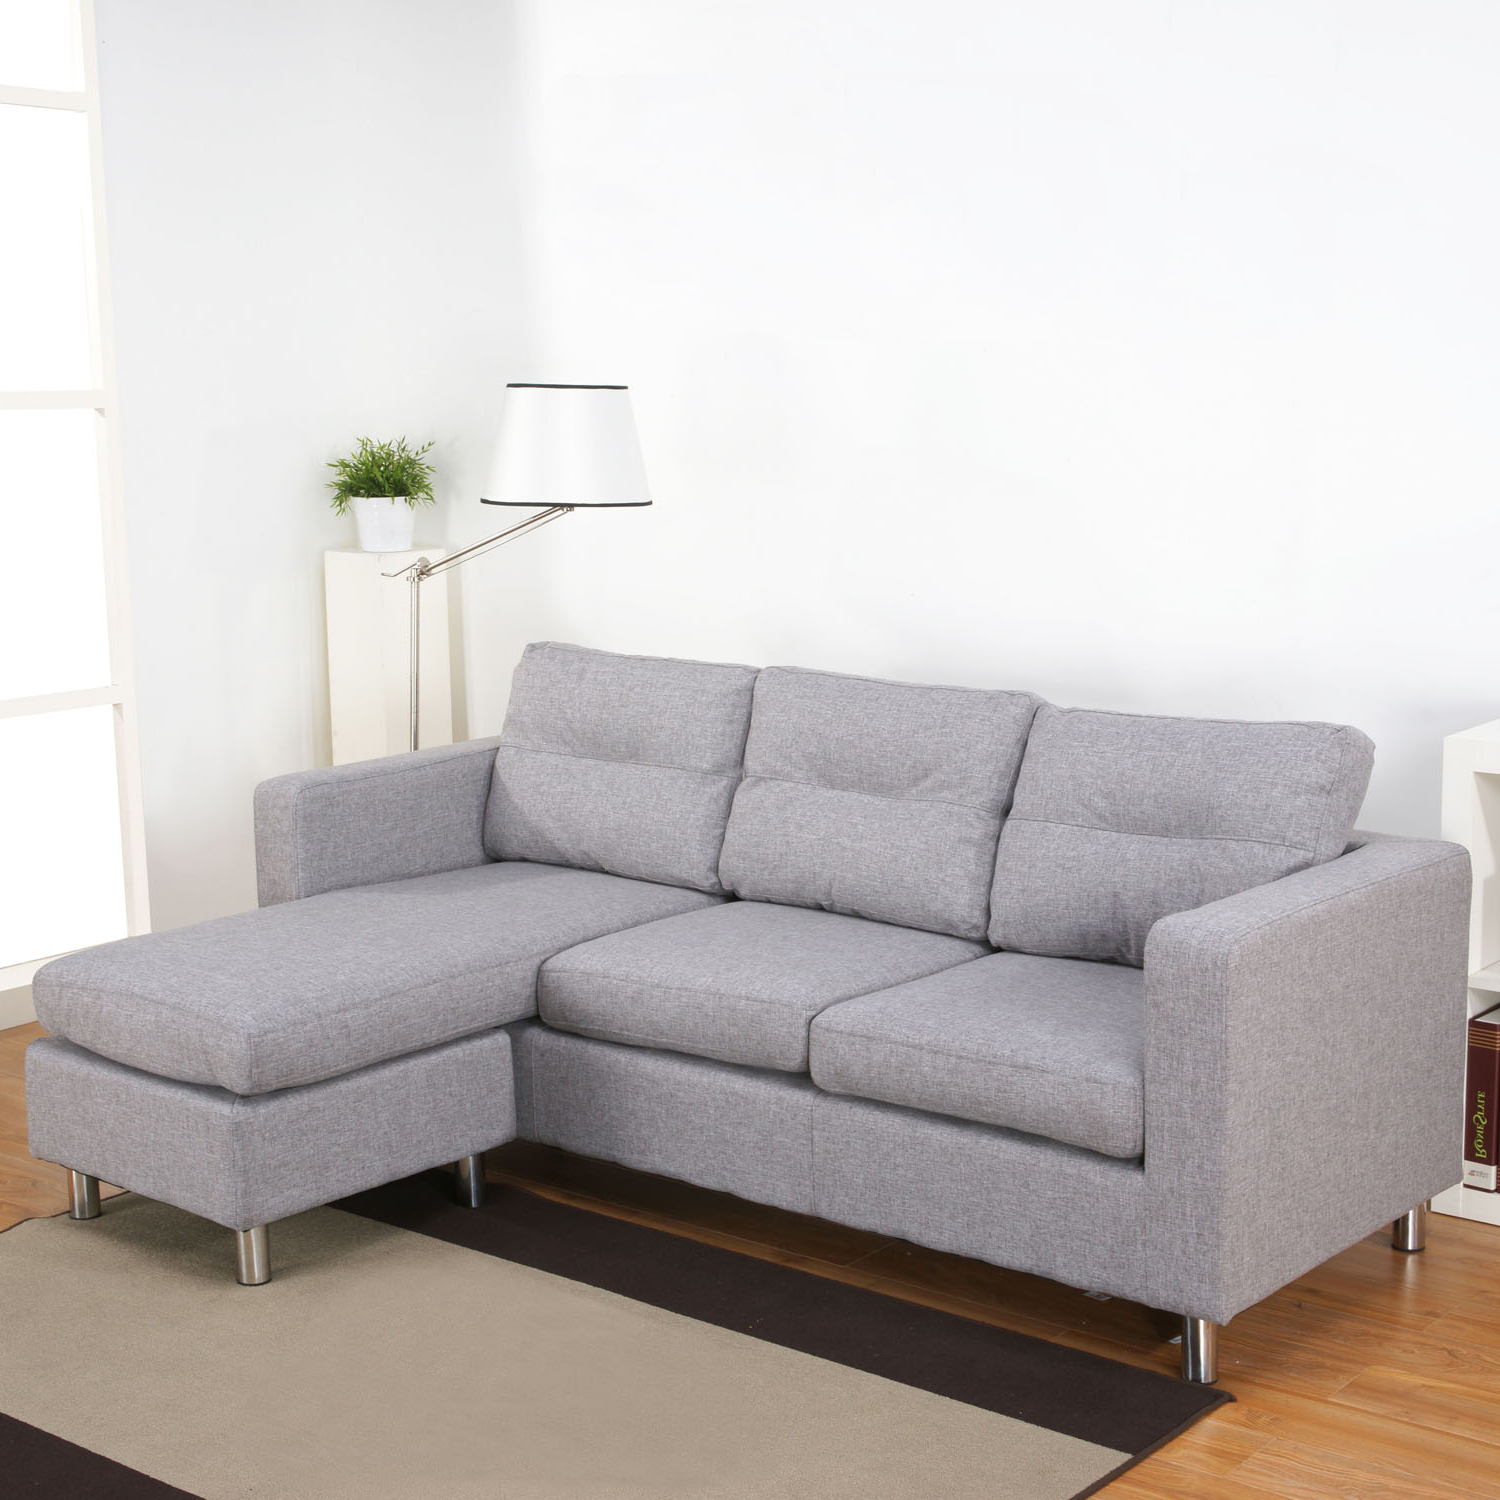 Tess 2 Piece Power Reclining Sectionals With Laf Chaise Intended For Widely Used Furniture : Gray Sectional Sofas With Chaise Tuckr Box Decors How To (View 20 of 20)